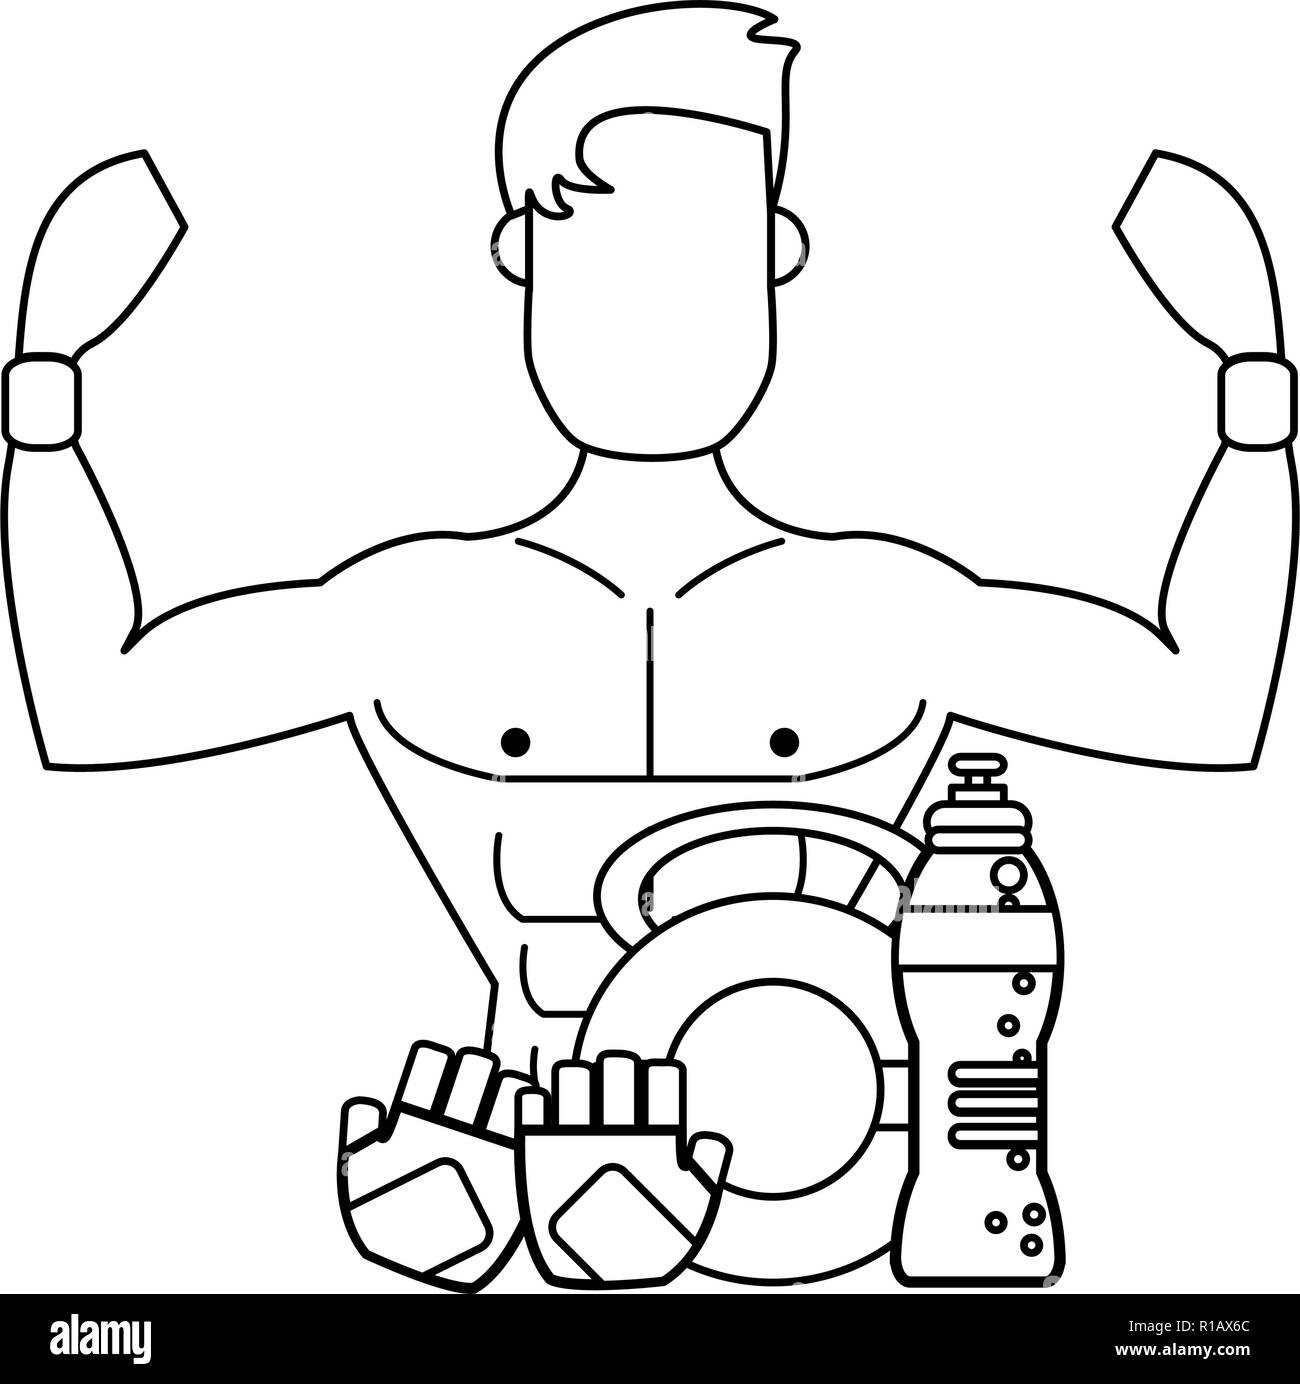 man flexing biceps stock vector images alamy Arm Veins Black man flexing muscular arms and kettlebell with water and gloves in black and white vector illustration